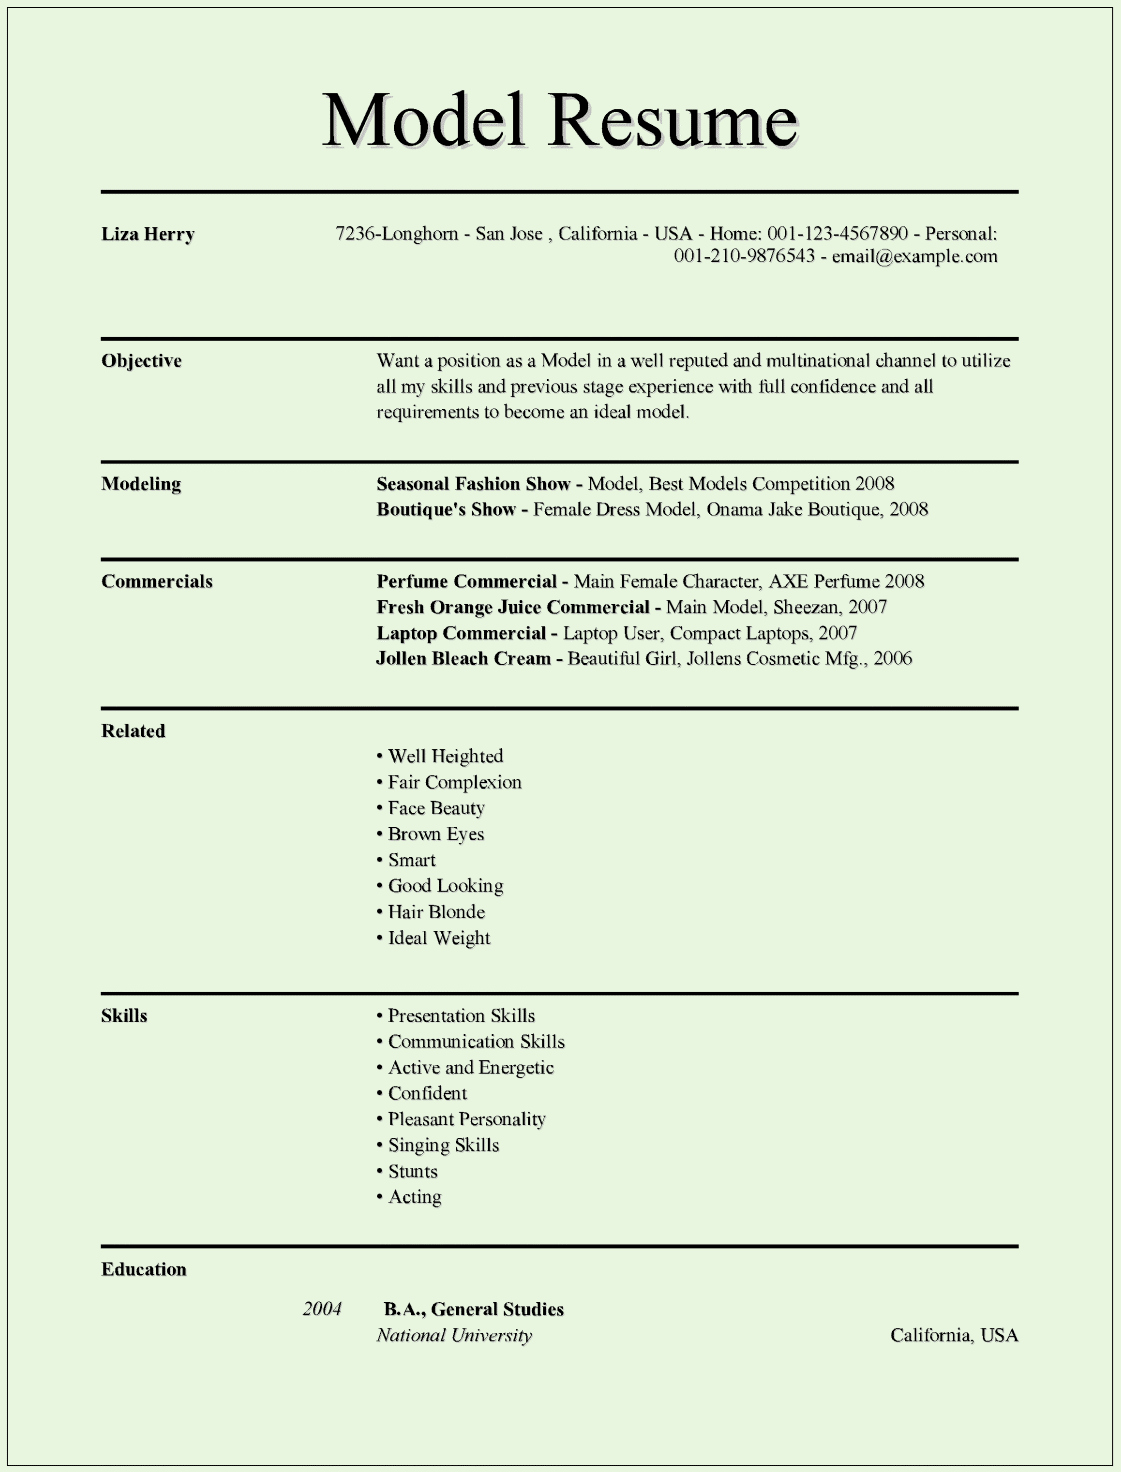 Resume Examples In Word format Unique Model Resume Templates for Ms Word – Free Example format